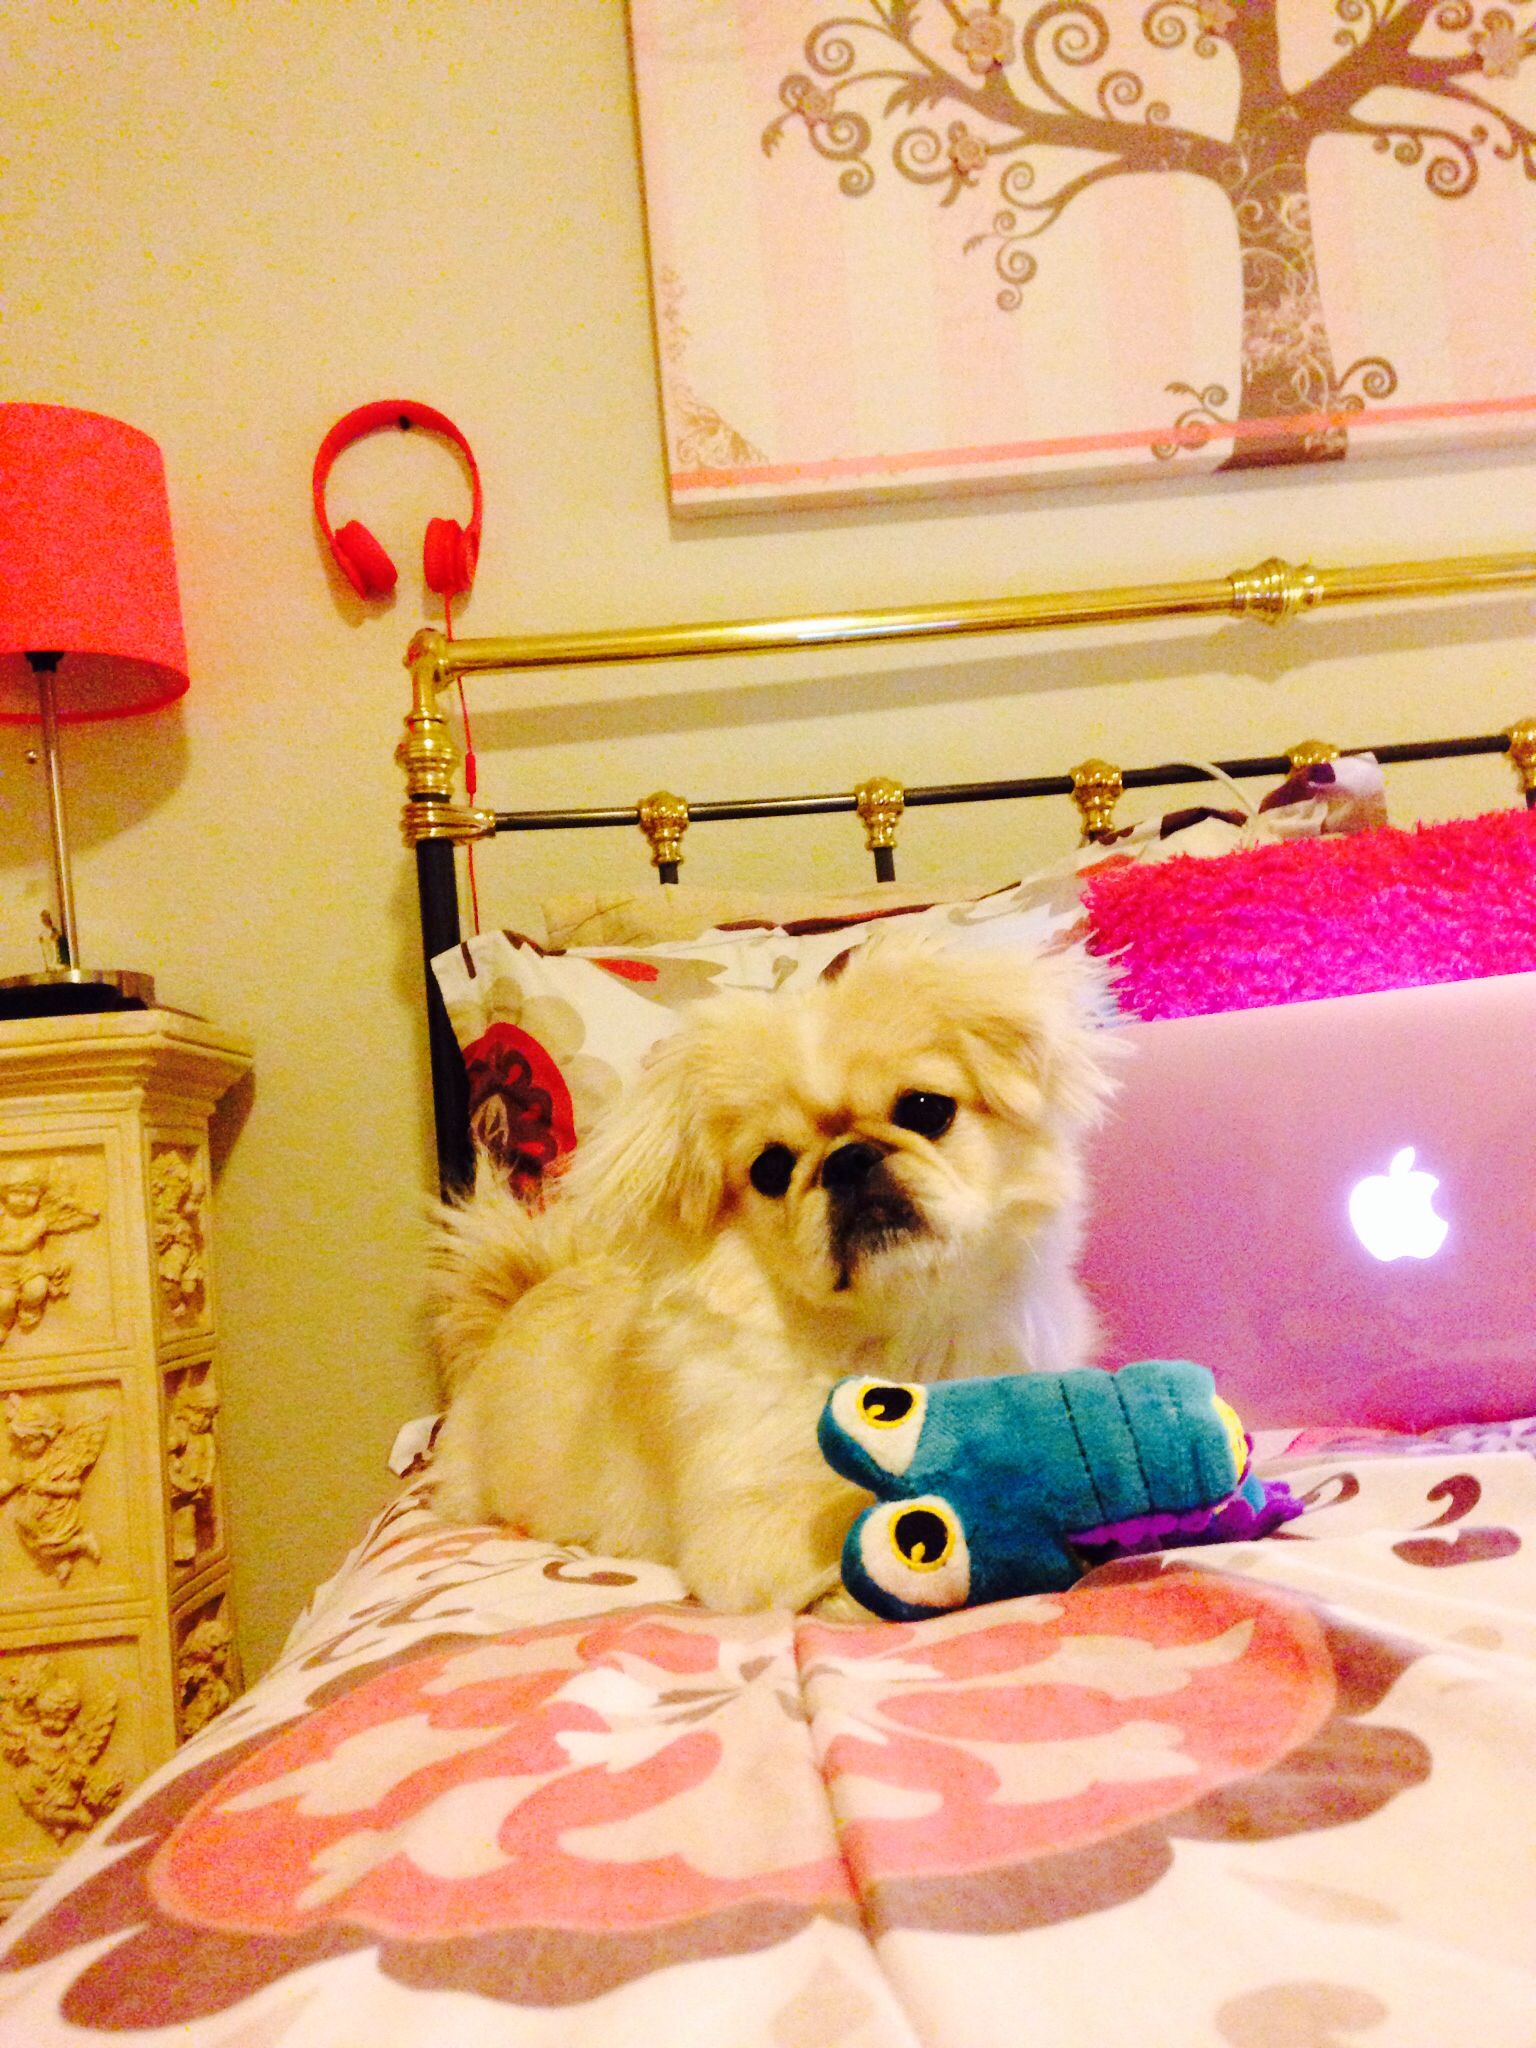 Pekingese invading the side of my bed! That's what they do